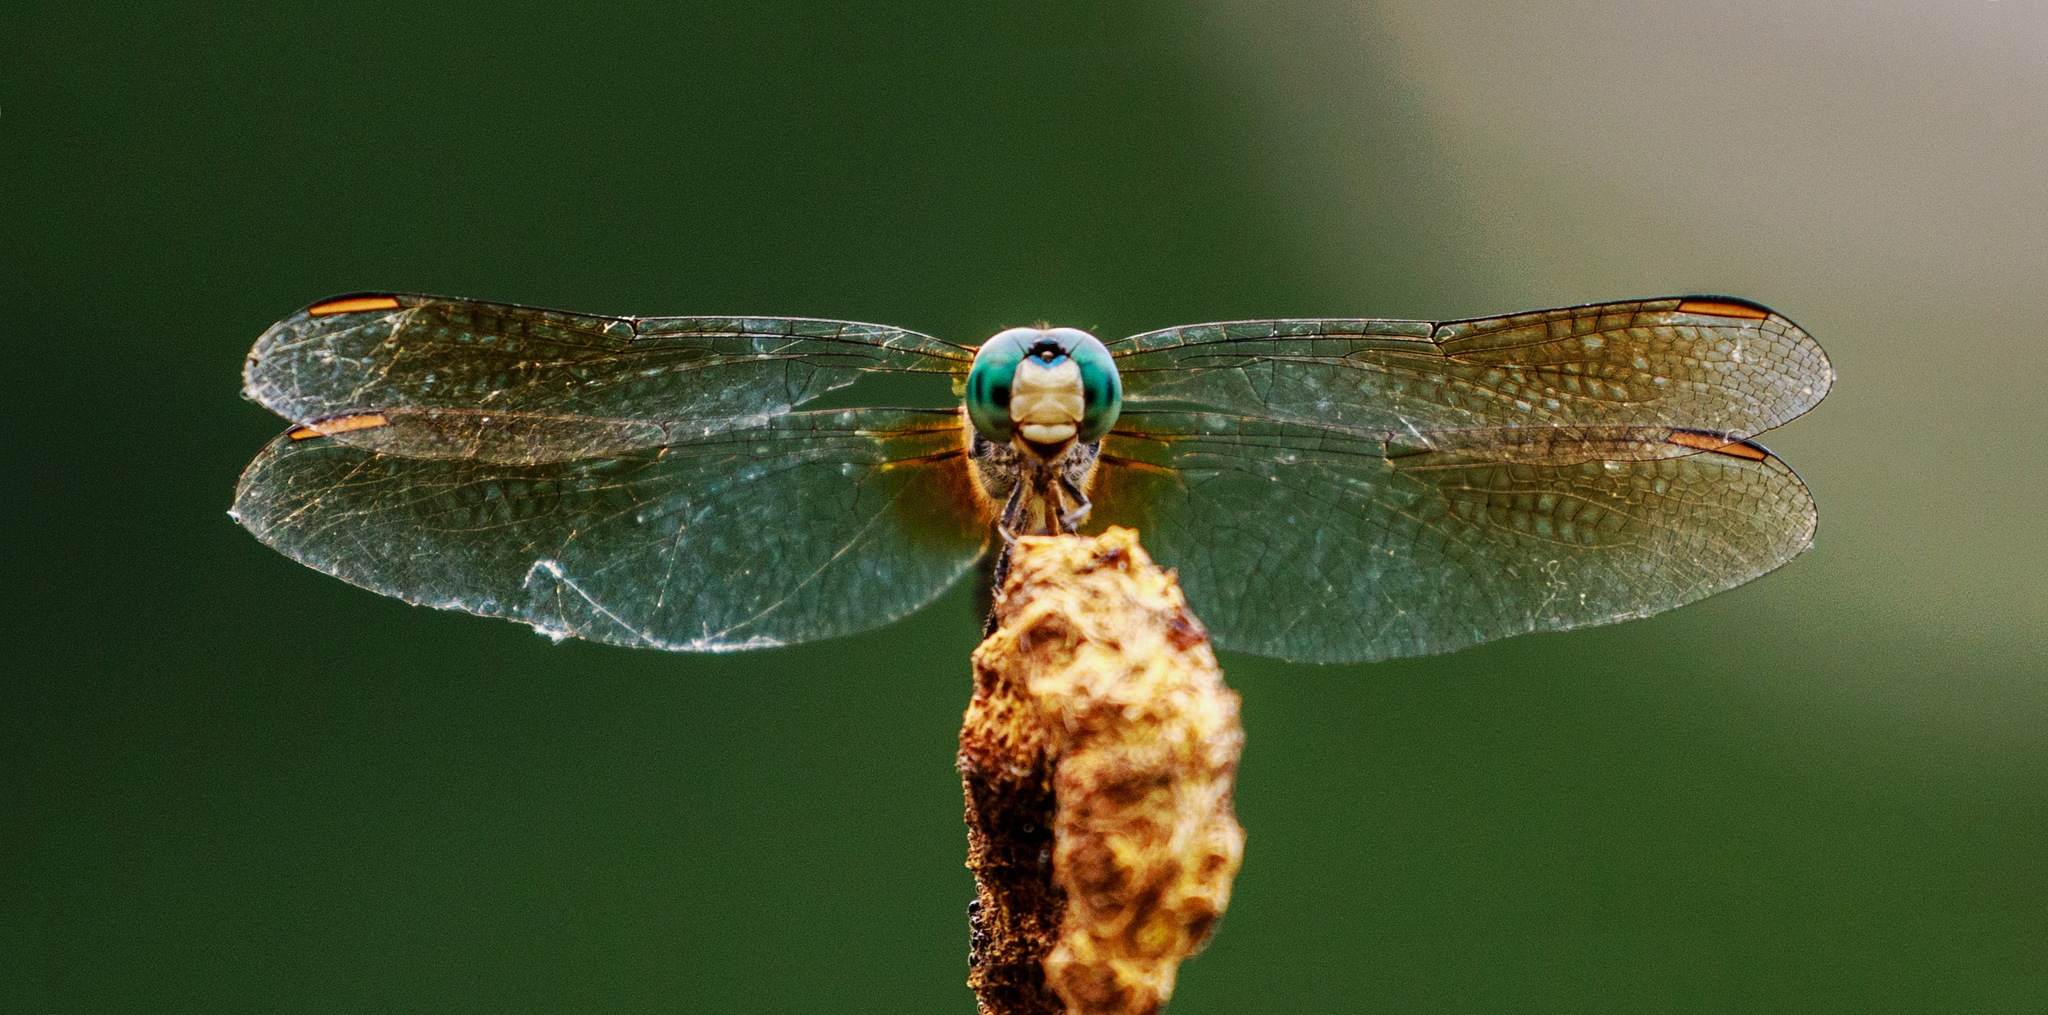 Evinrude the Dragonfly by Mary Carter